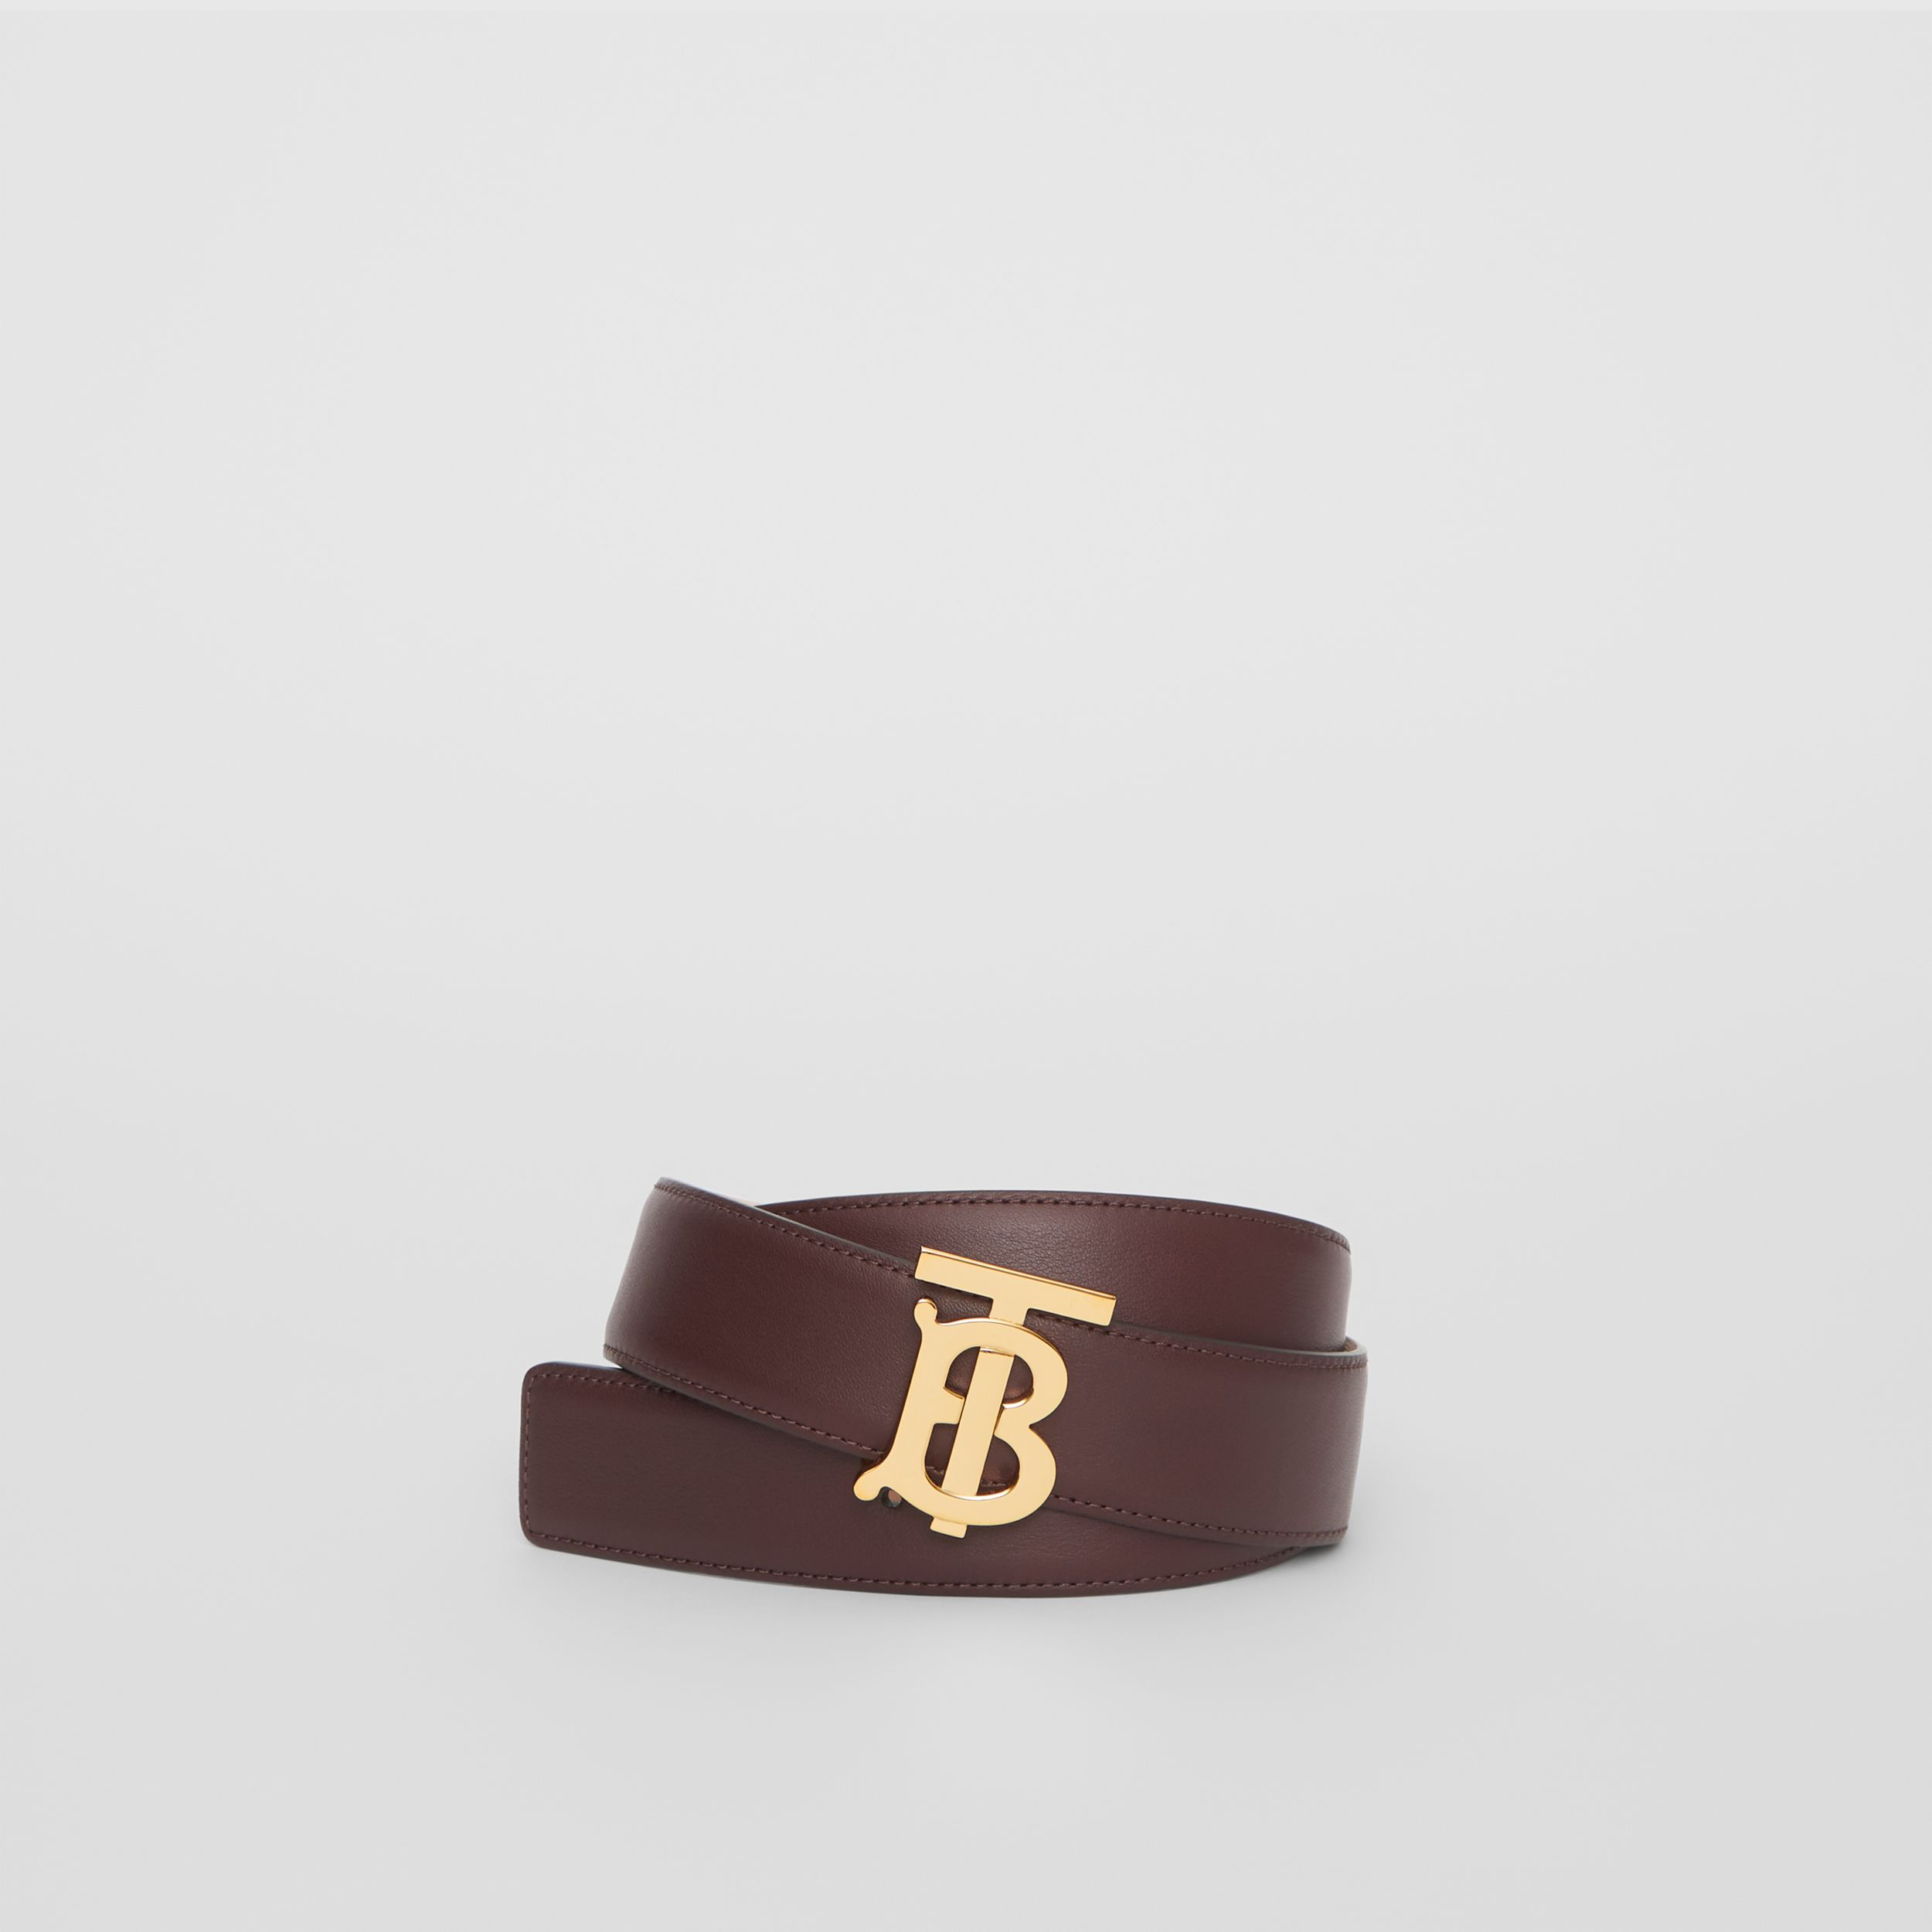 Reversible Monogram Motif Leather Belt in Oxblood/rose Beige - Women | Burberry - 1